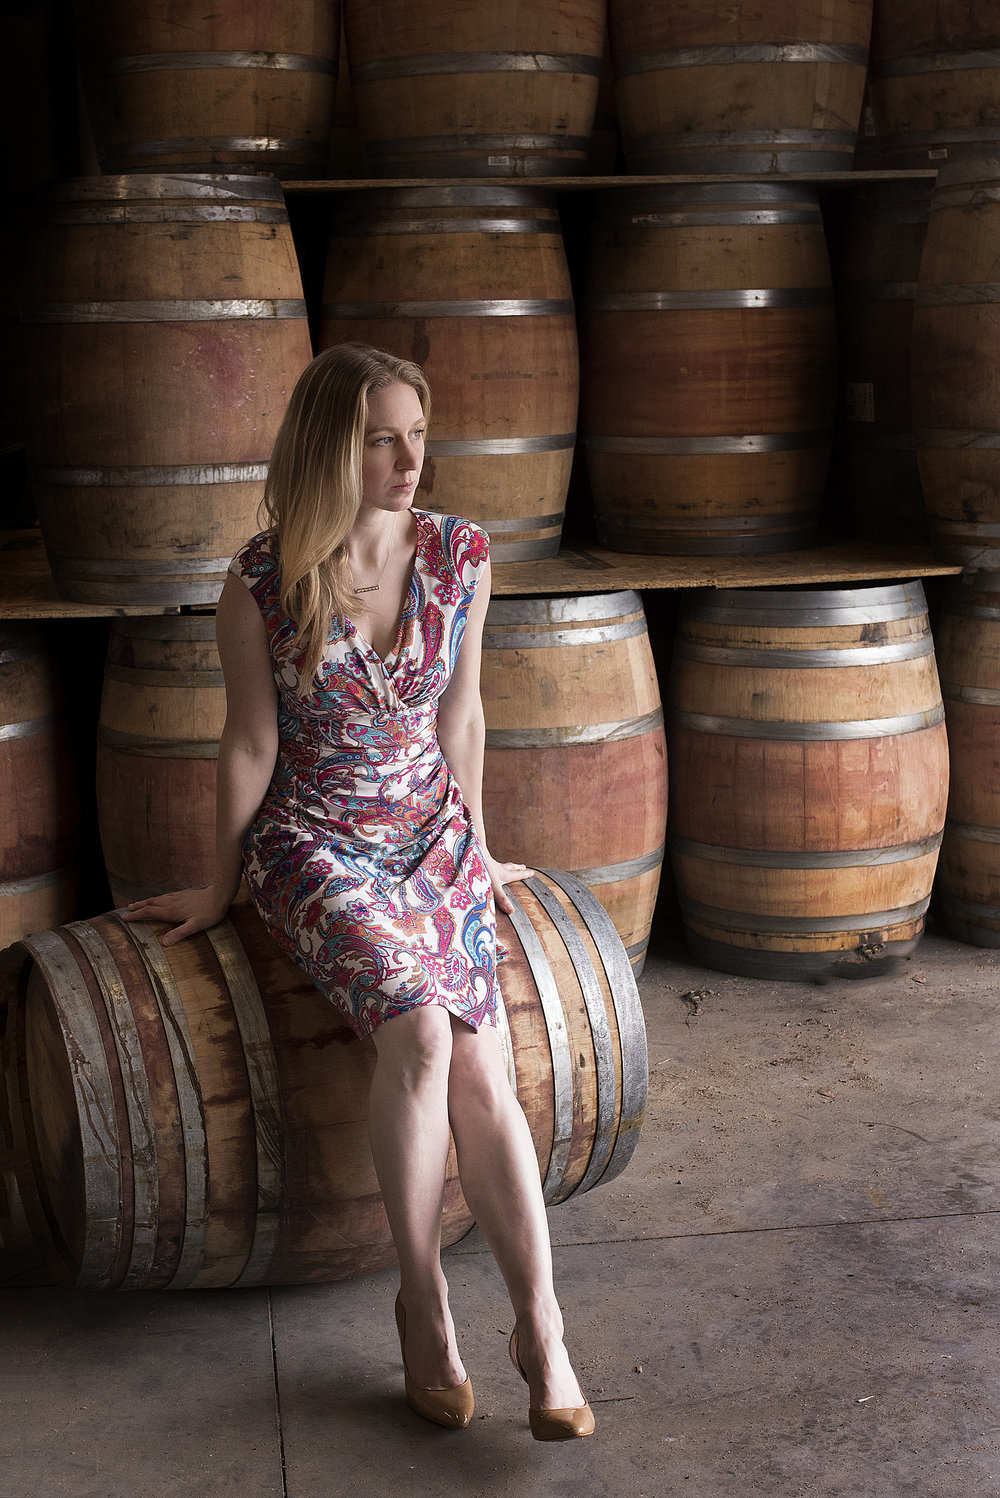 Amanda O'Brien - Owner eighteen twenty winesAmanda started eighteen twenty wines in 2015 with a friend who had been home-brewing rhubarb wine. When she tried it, she had the same reaction everyone else does when they have it